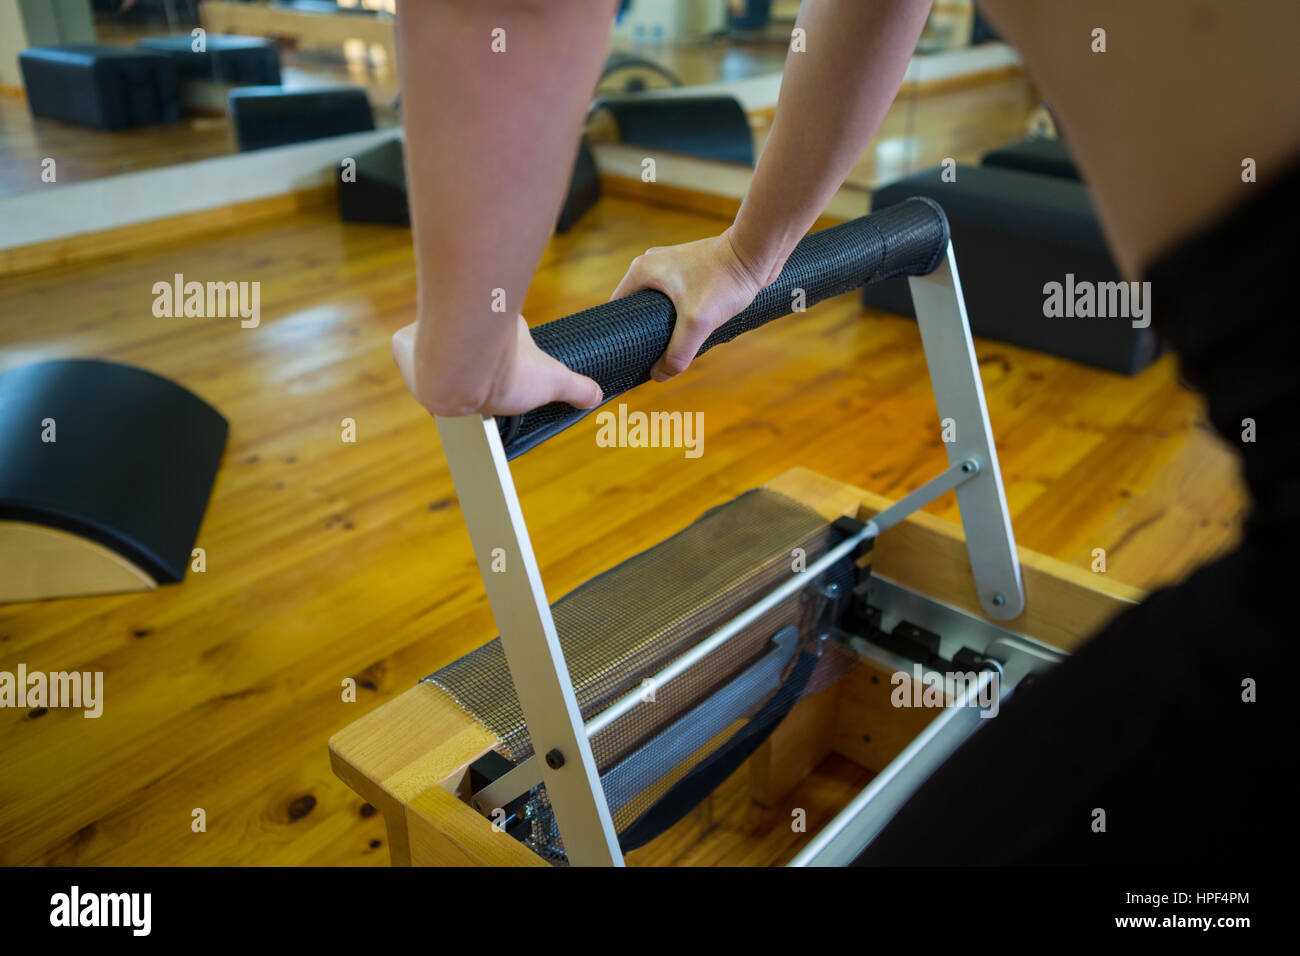 Mid section of woman exercising on reformer in gym - Stock Image